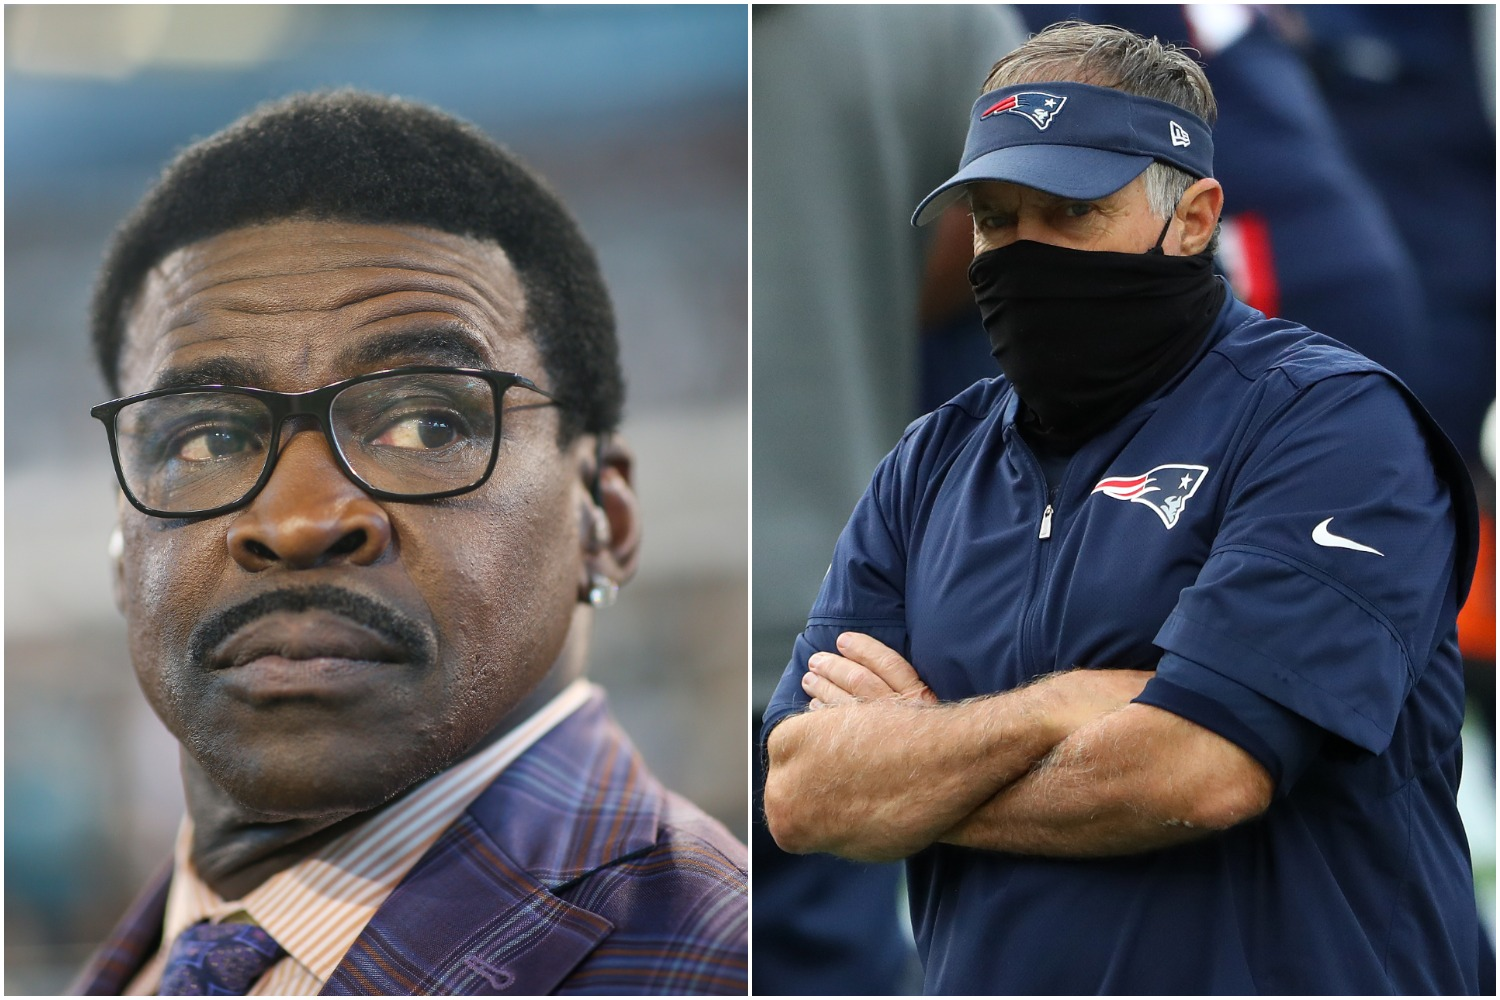 Michael Irvin may save Bill Belichick from suffering a major blow to his legacy if Patriots WR N'Keal Harry accepts his invitation.